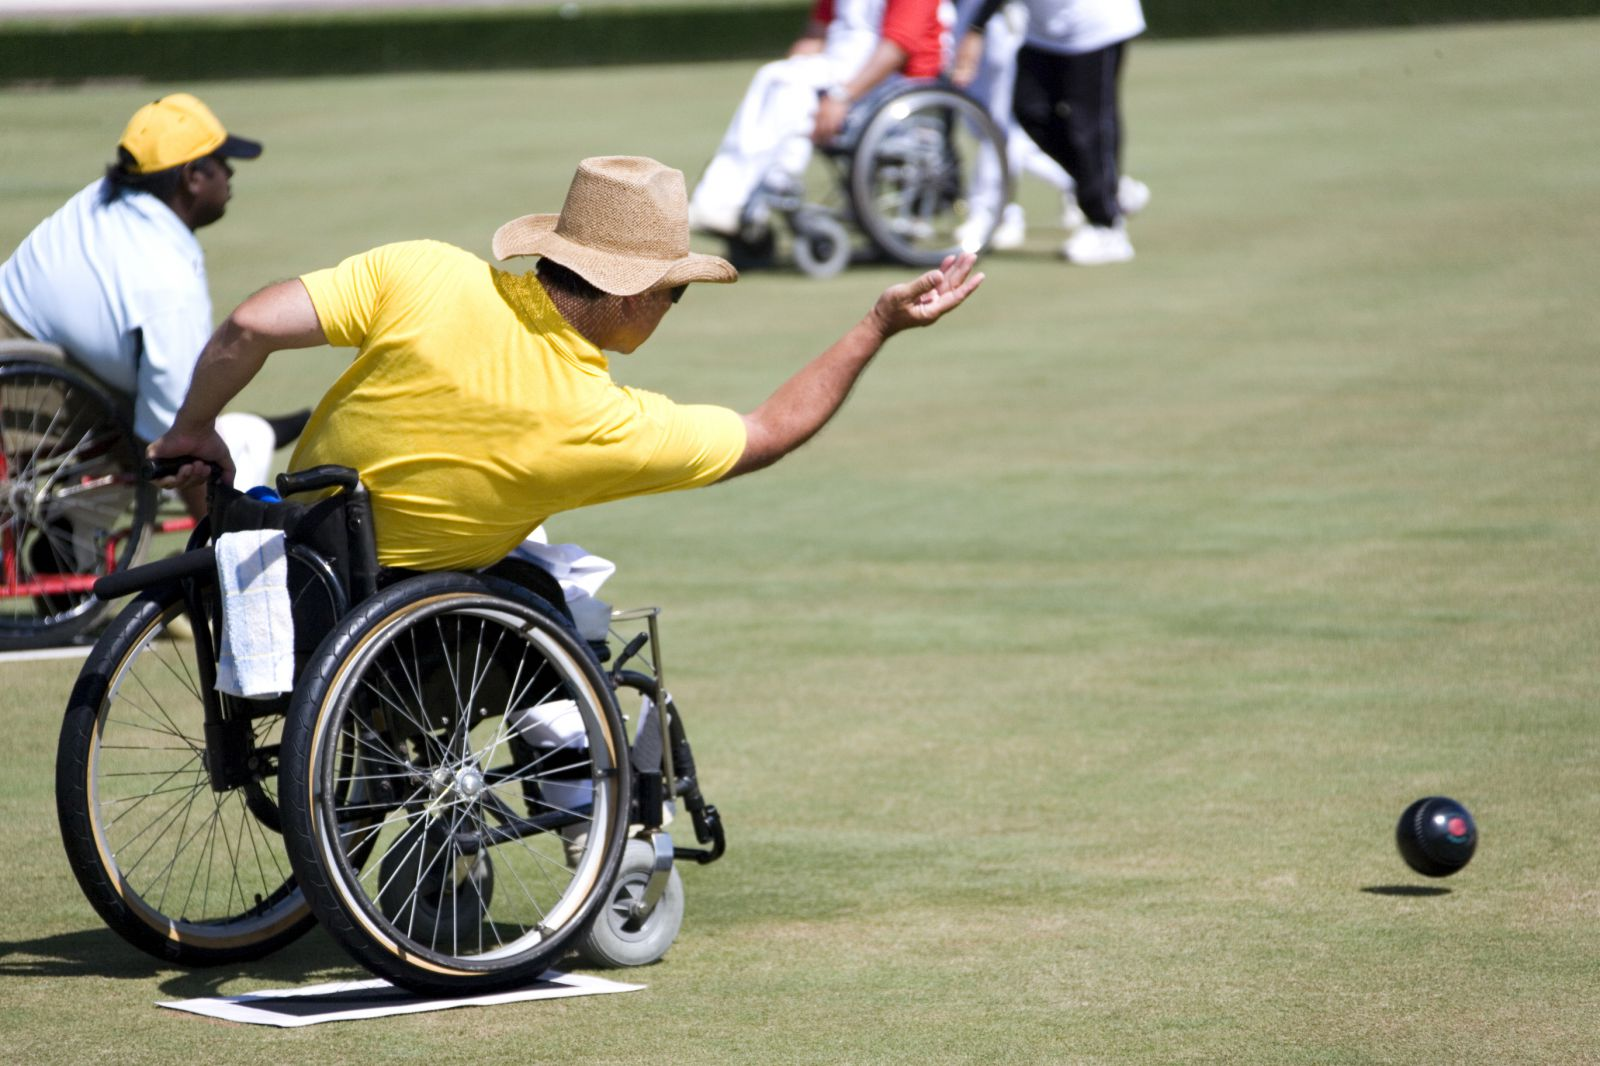 A man wearing a yellow shirt and a tan cowboy hat leans forward in a wheelchair, throwing a large, black ball across a lawn bowling playing field.